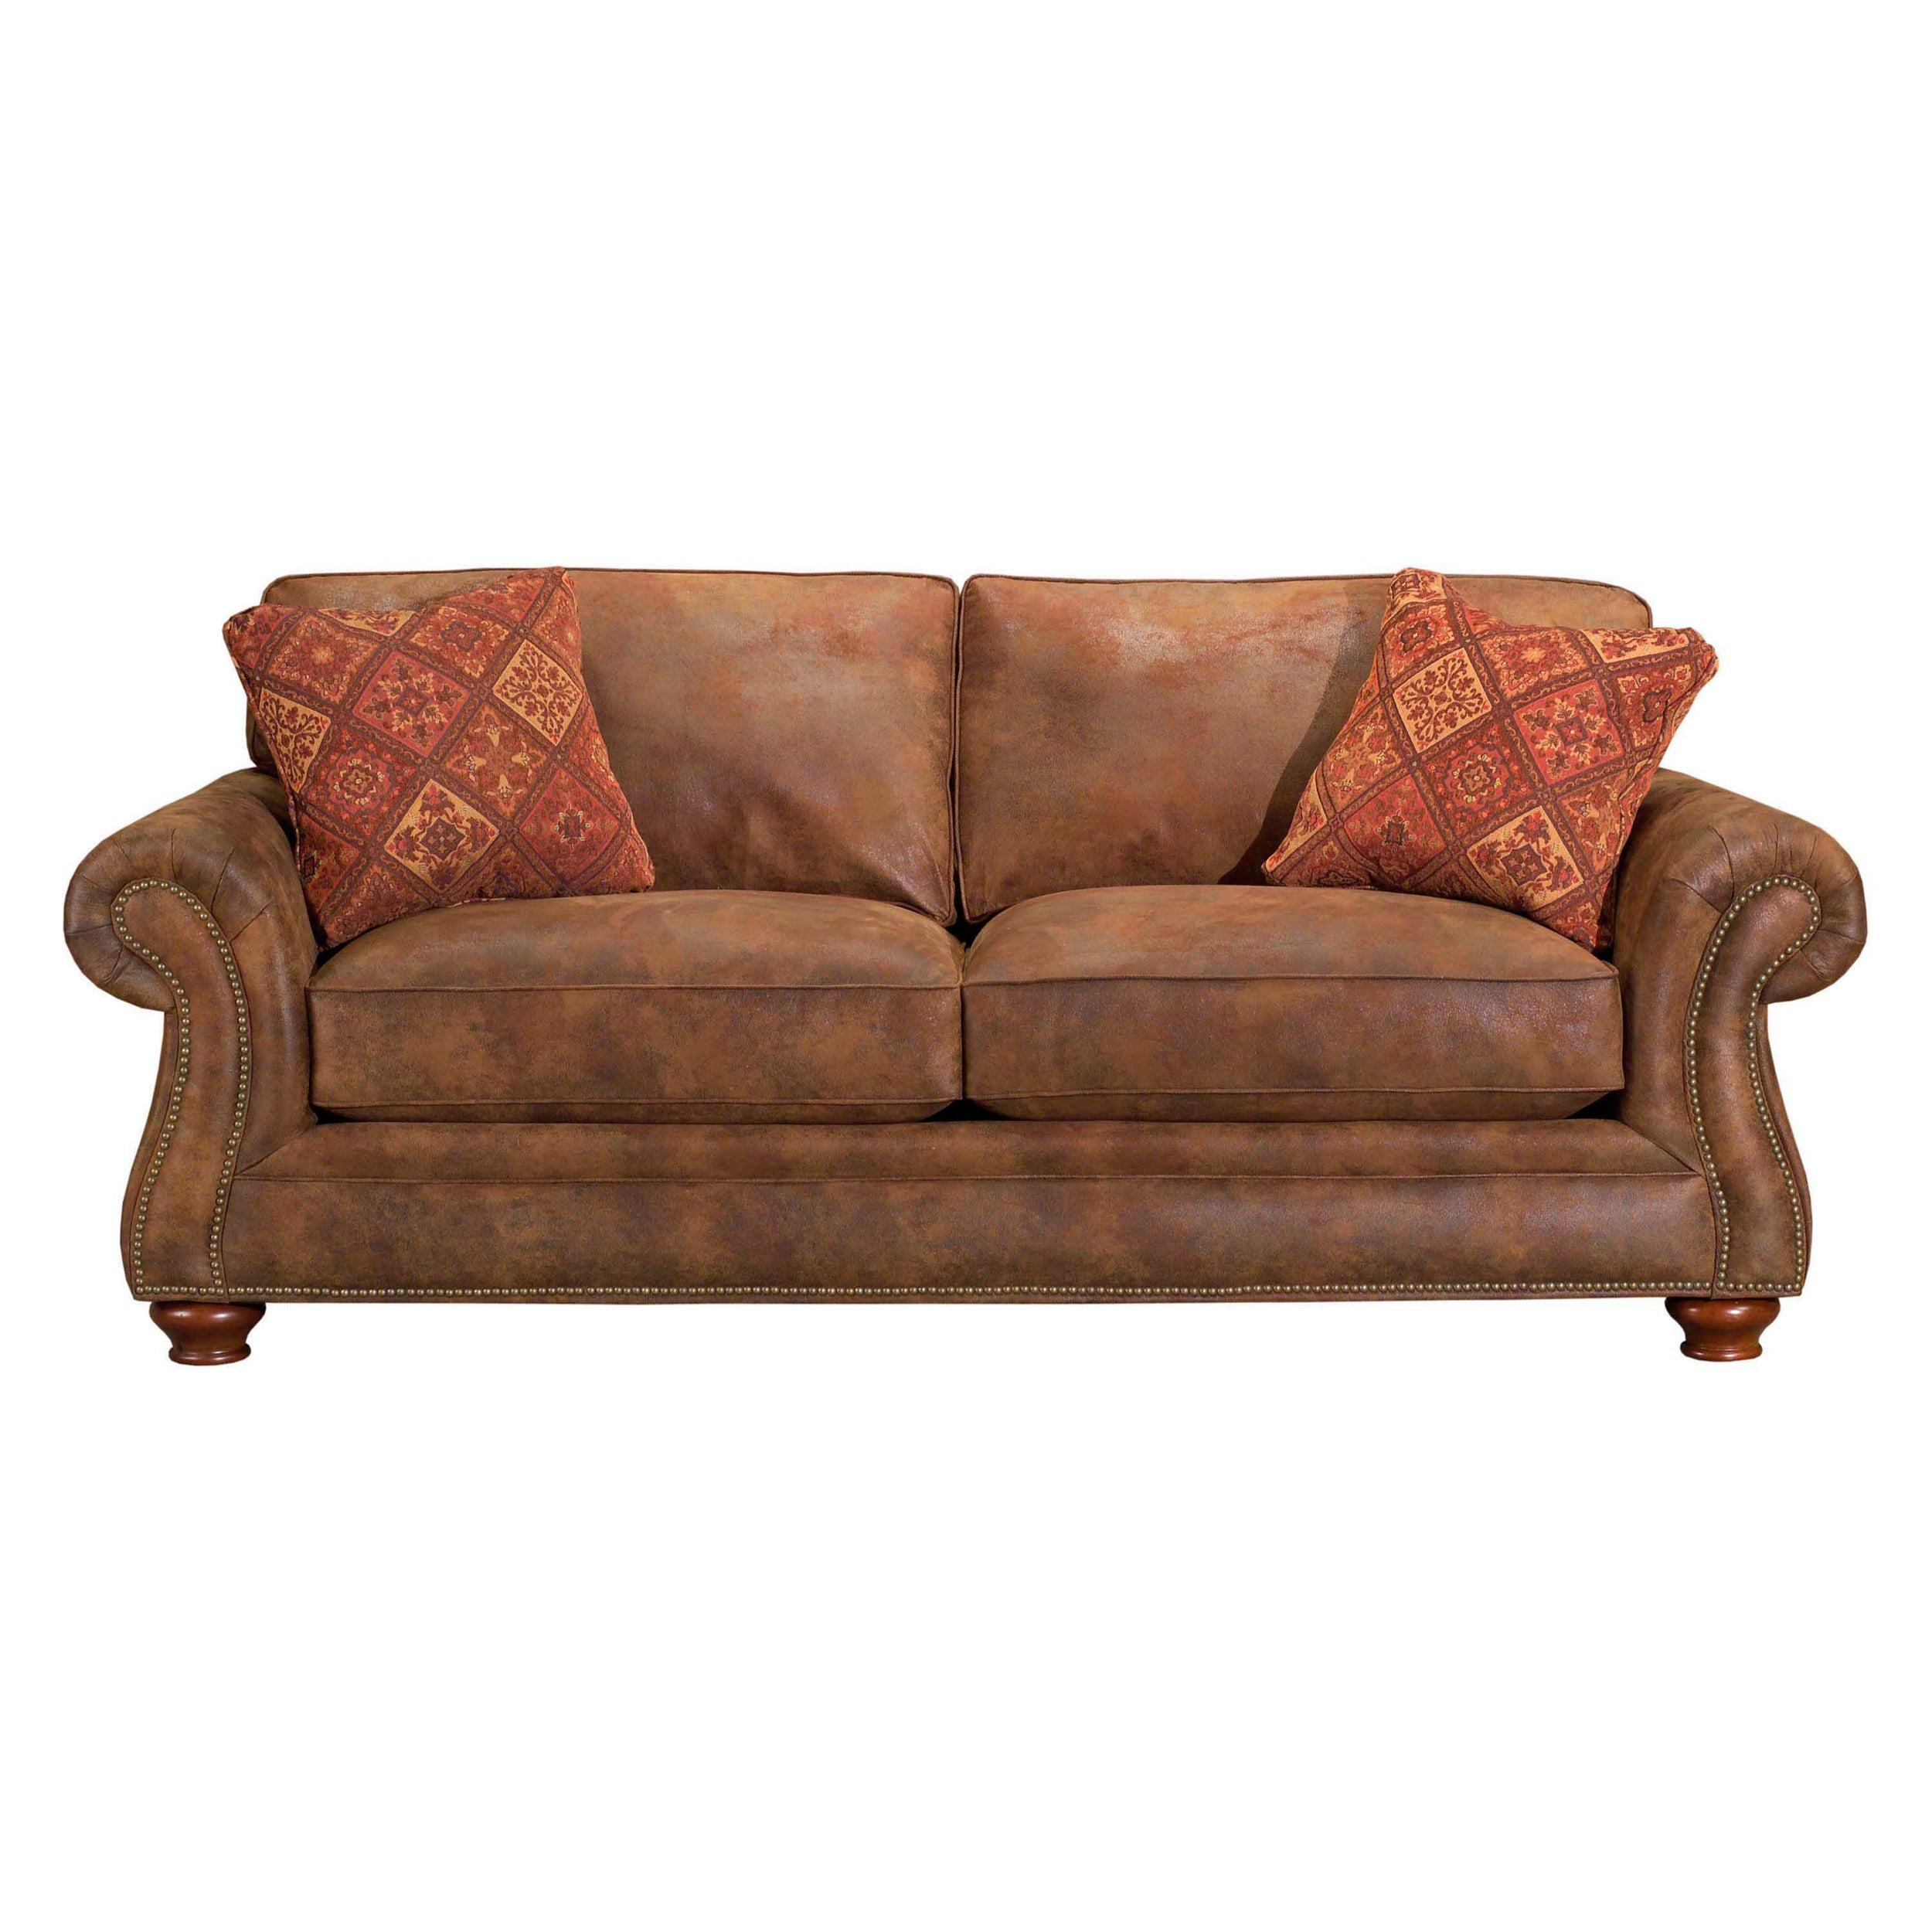 Surprising Broyhill Lauren 2 Brown Faux Leather Sofa And Pillows Squirreltailoven Fun Painted Chair Ideas Images Squirreltailovenorg